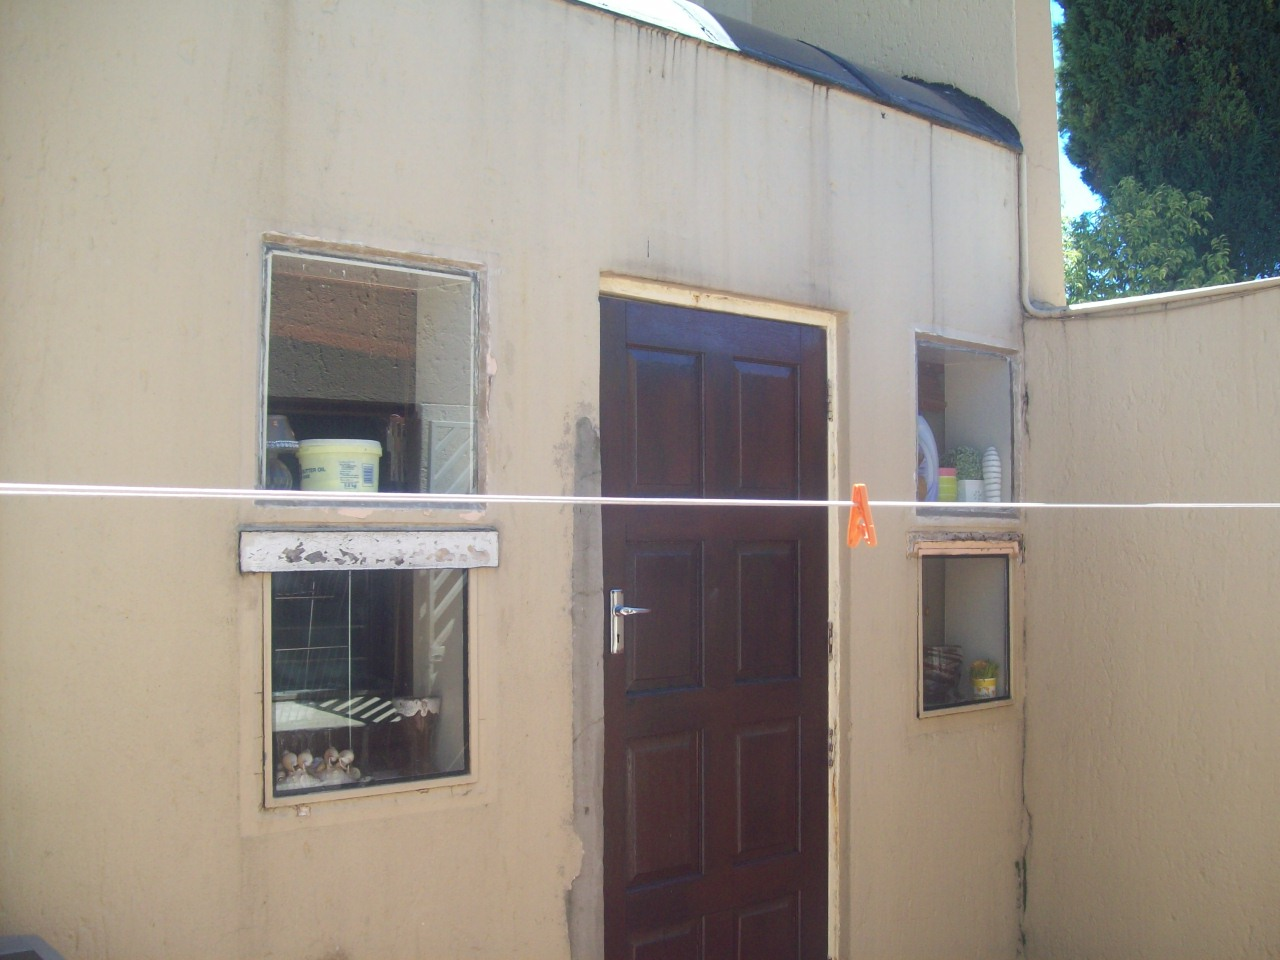 3 Bedroom Townhouse for sale in Bassonia ENT0071278 : photo#9